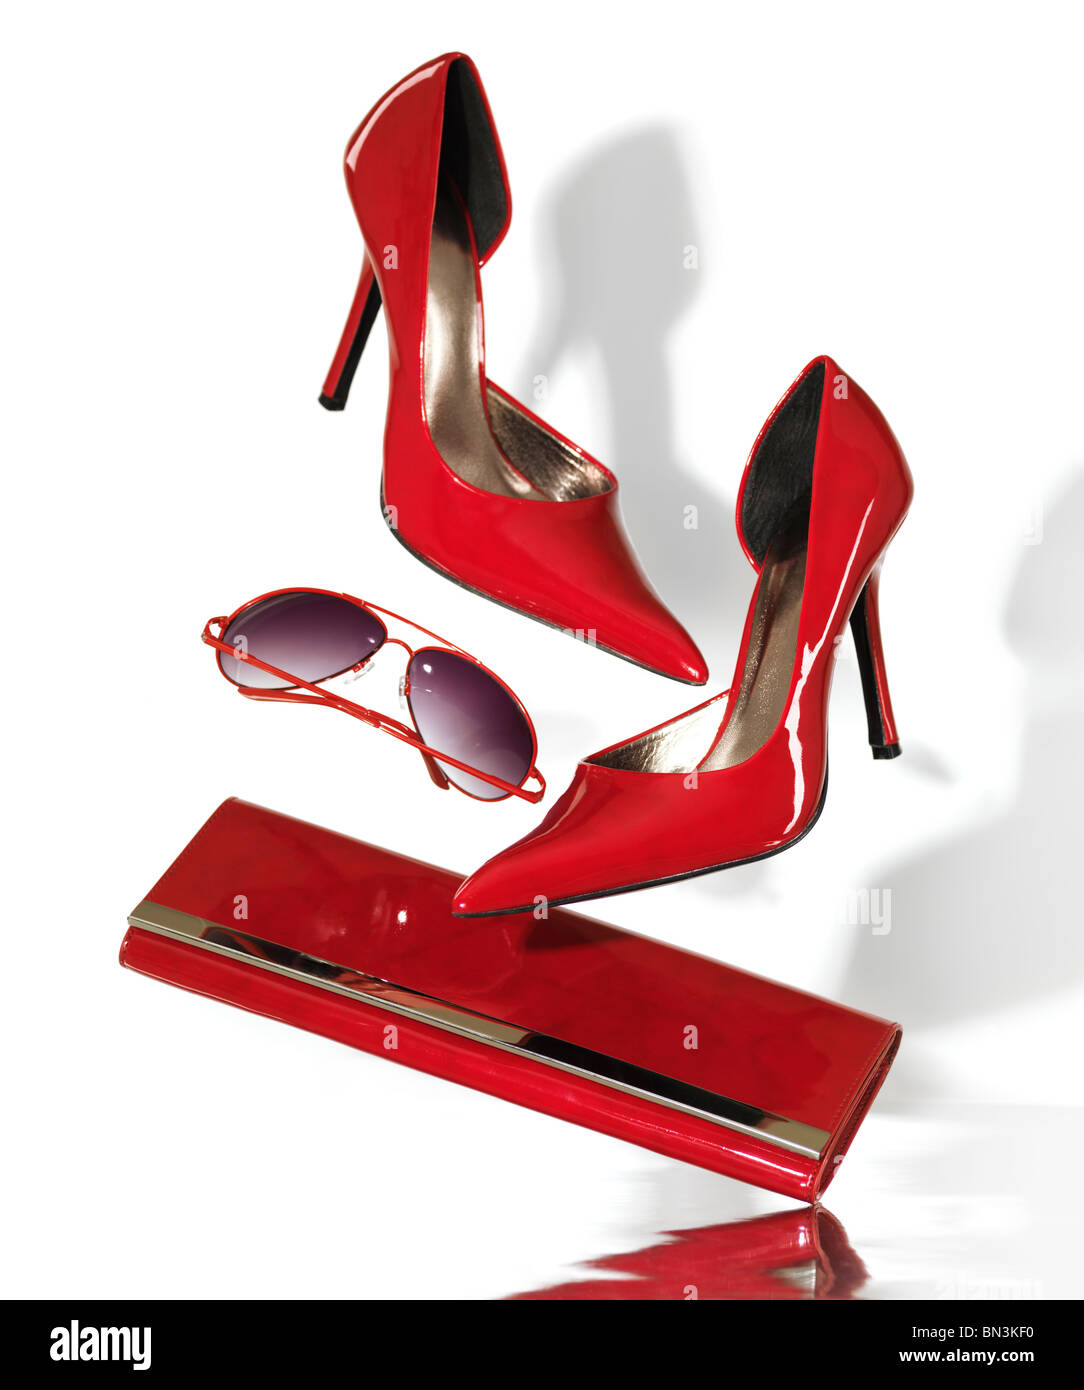 Stylish red high heel stiletto shoes sunglasses and a clutch hand bag falling on metal surface isolated on white Stock Photo